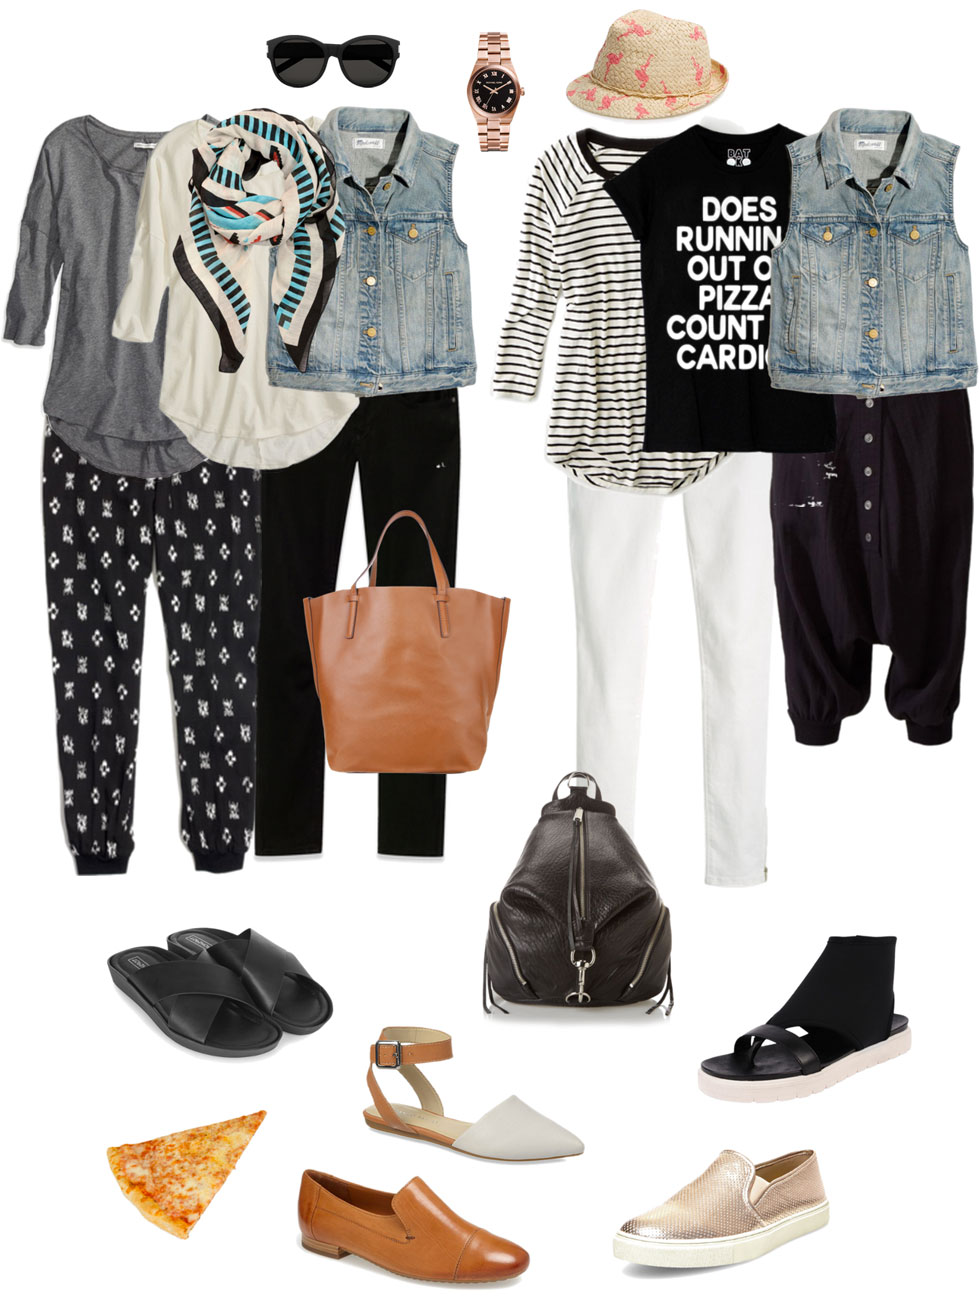 Mum on the Go: Casual Vest, Tee & Bottoms